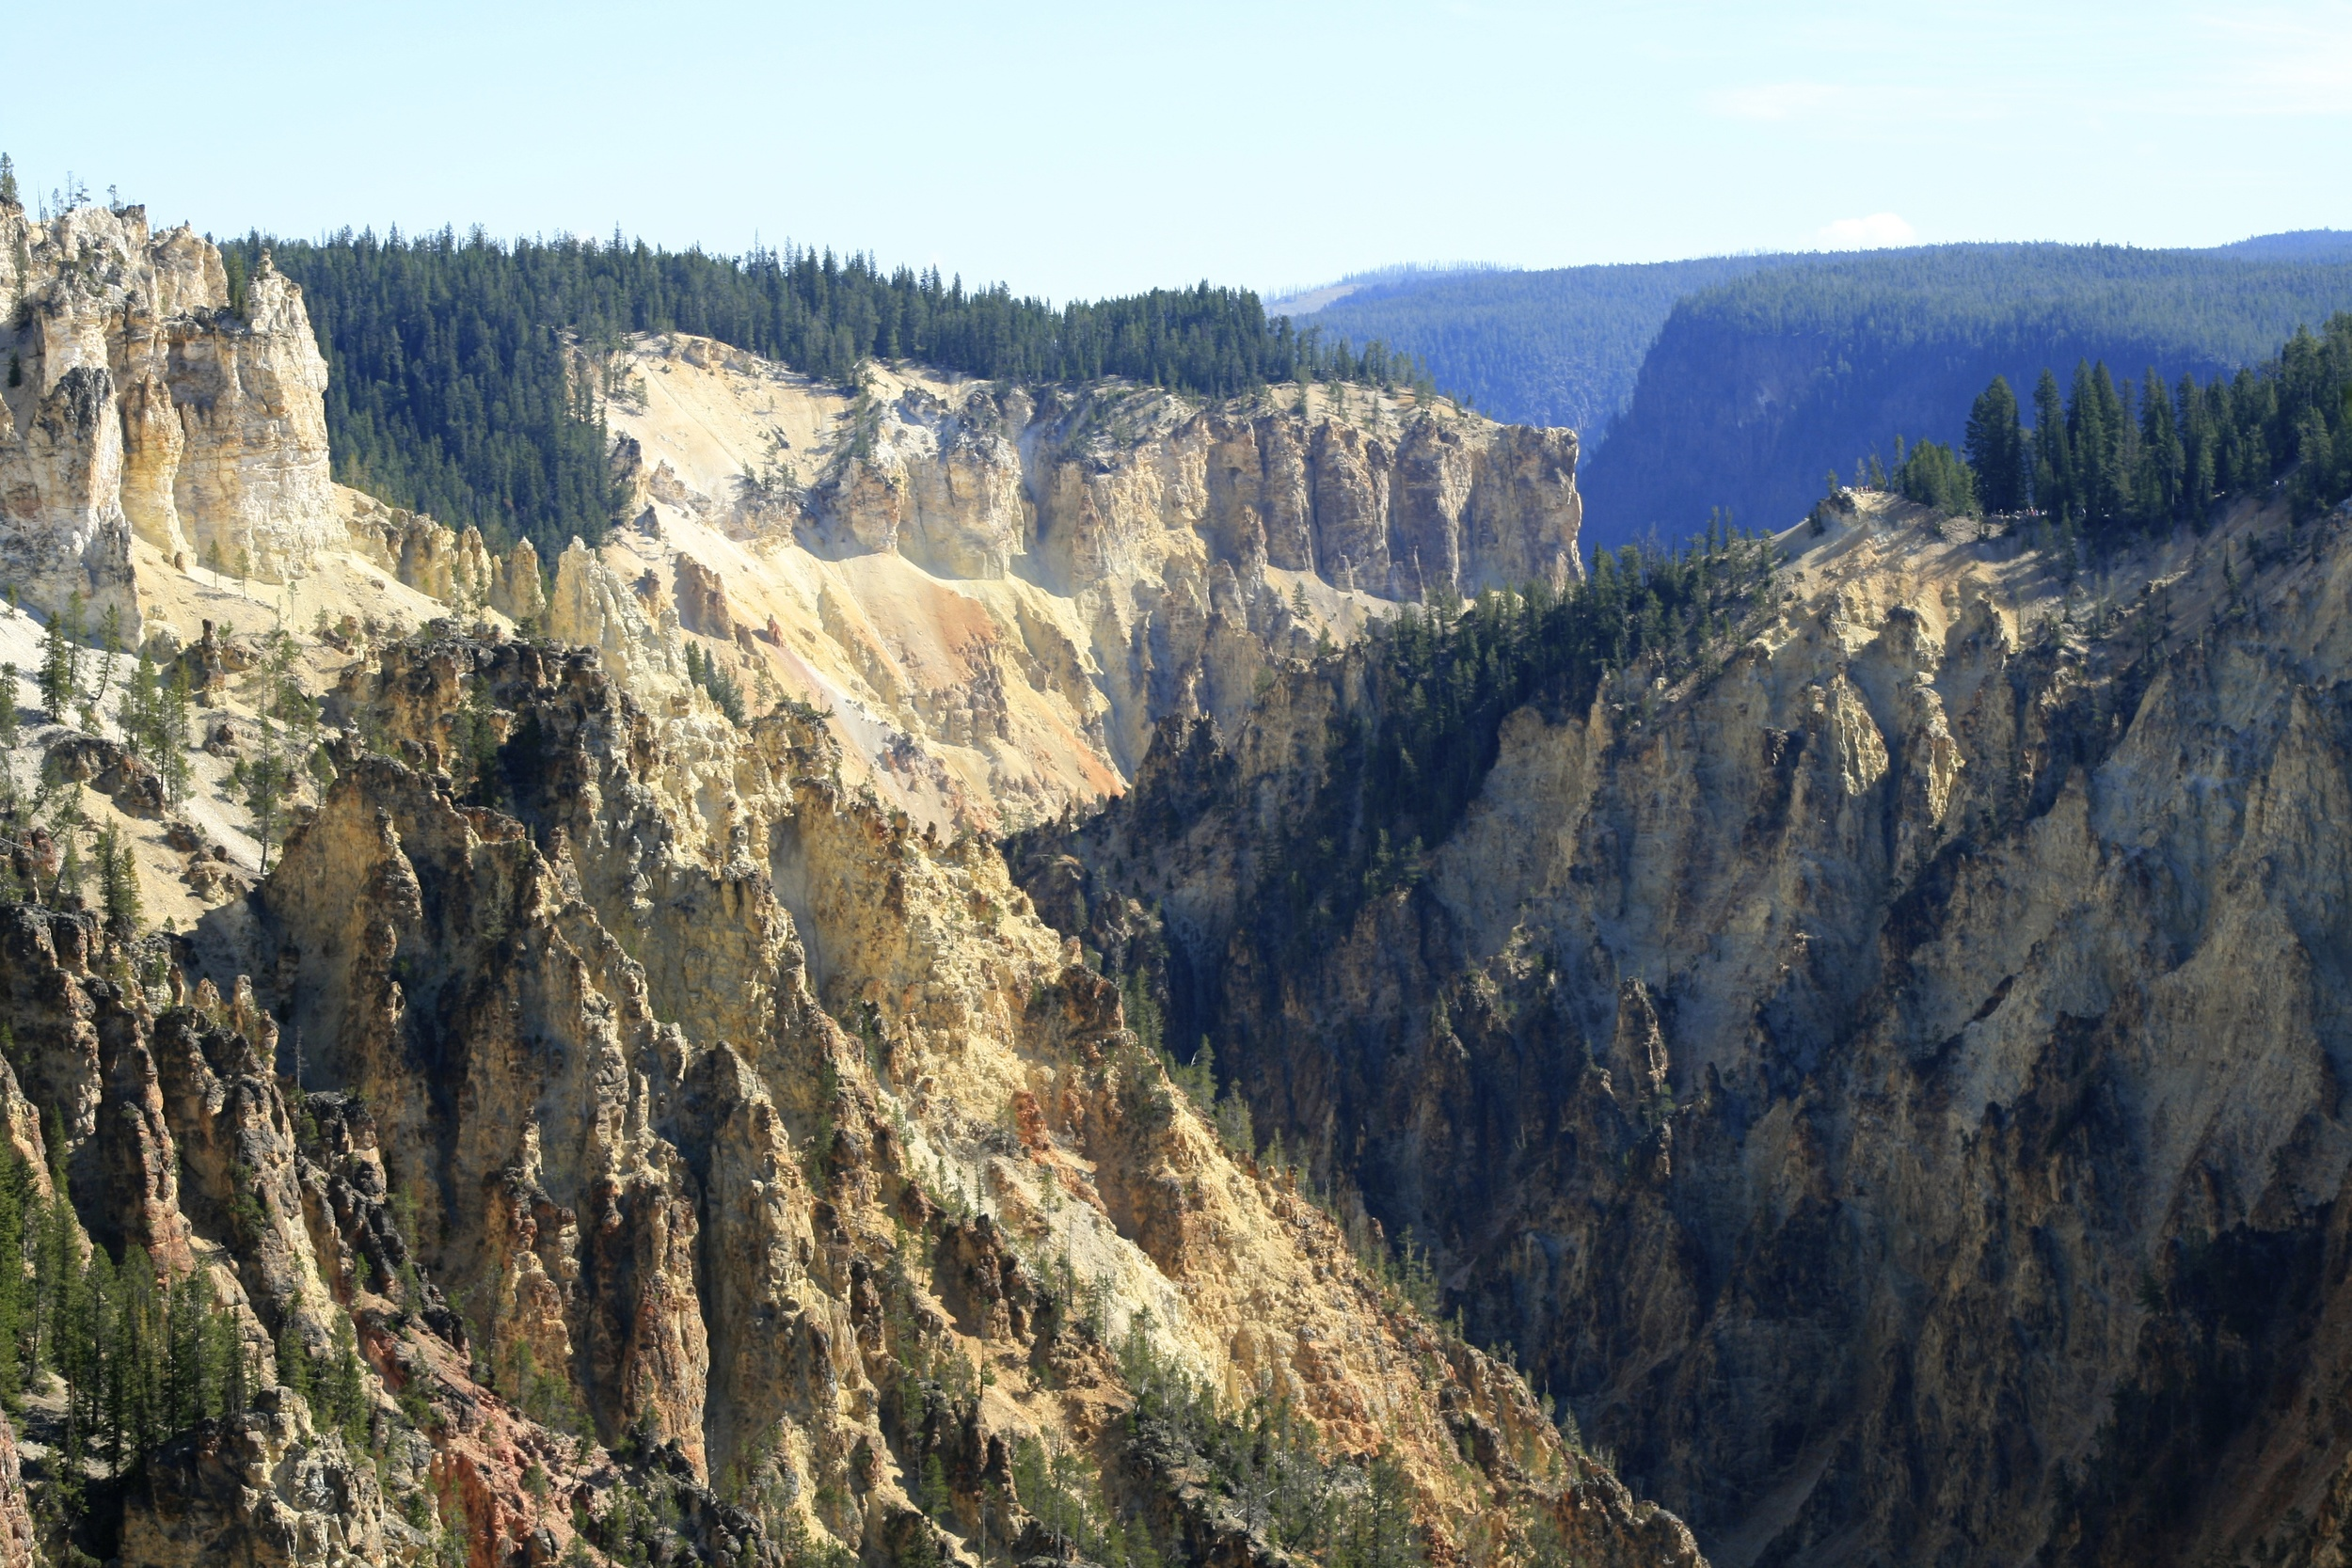 The view while hiking the rim of the Grand Canyon of the Yellowstone